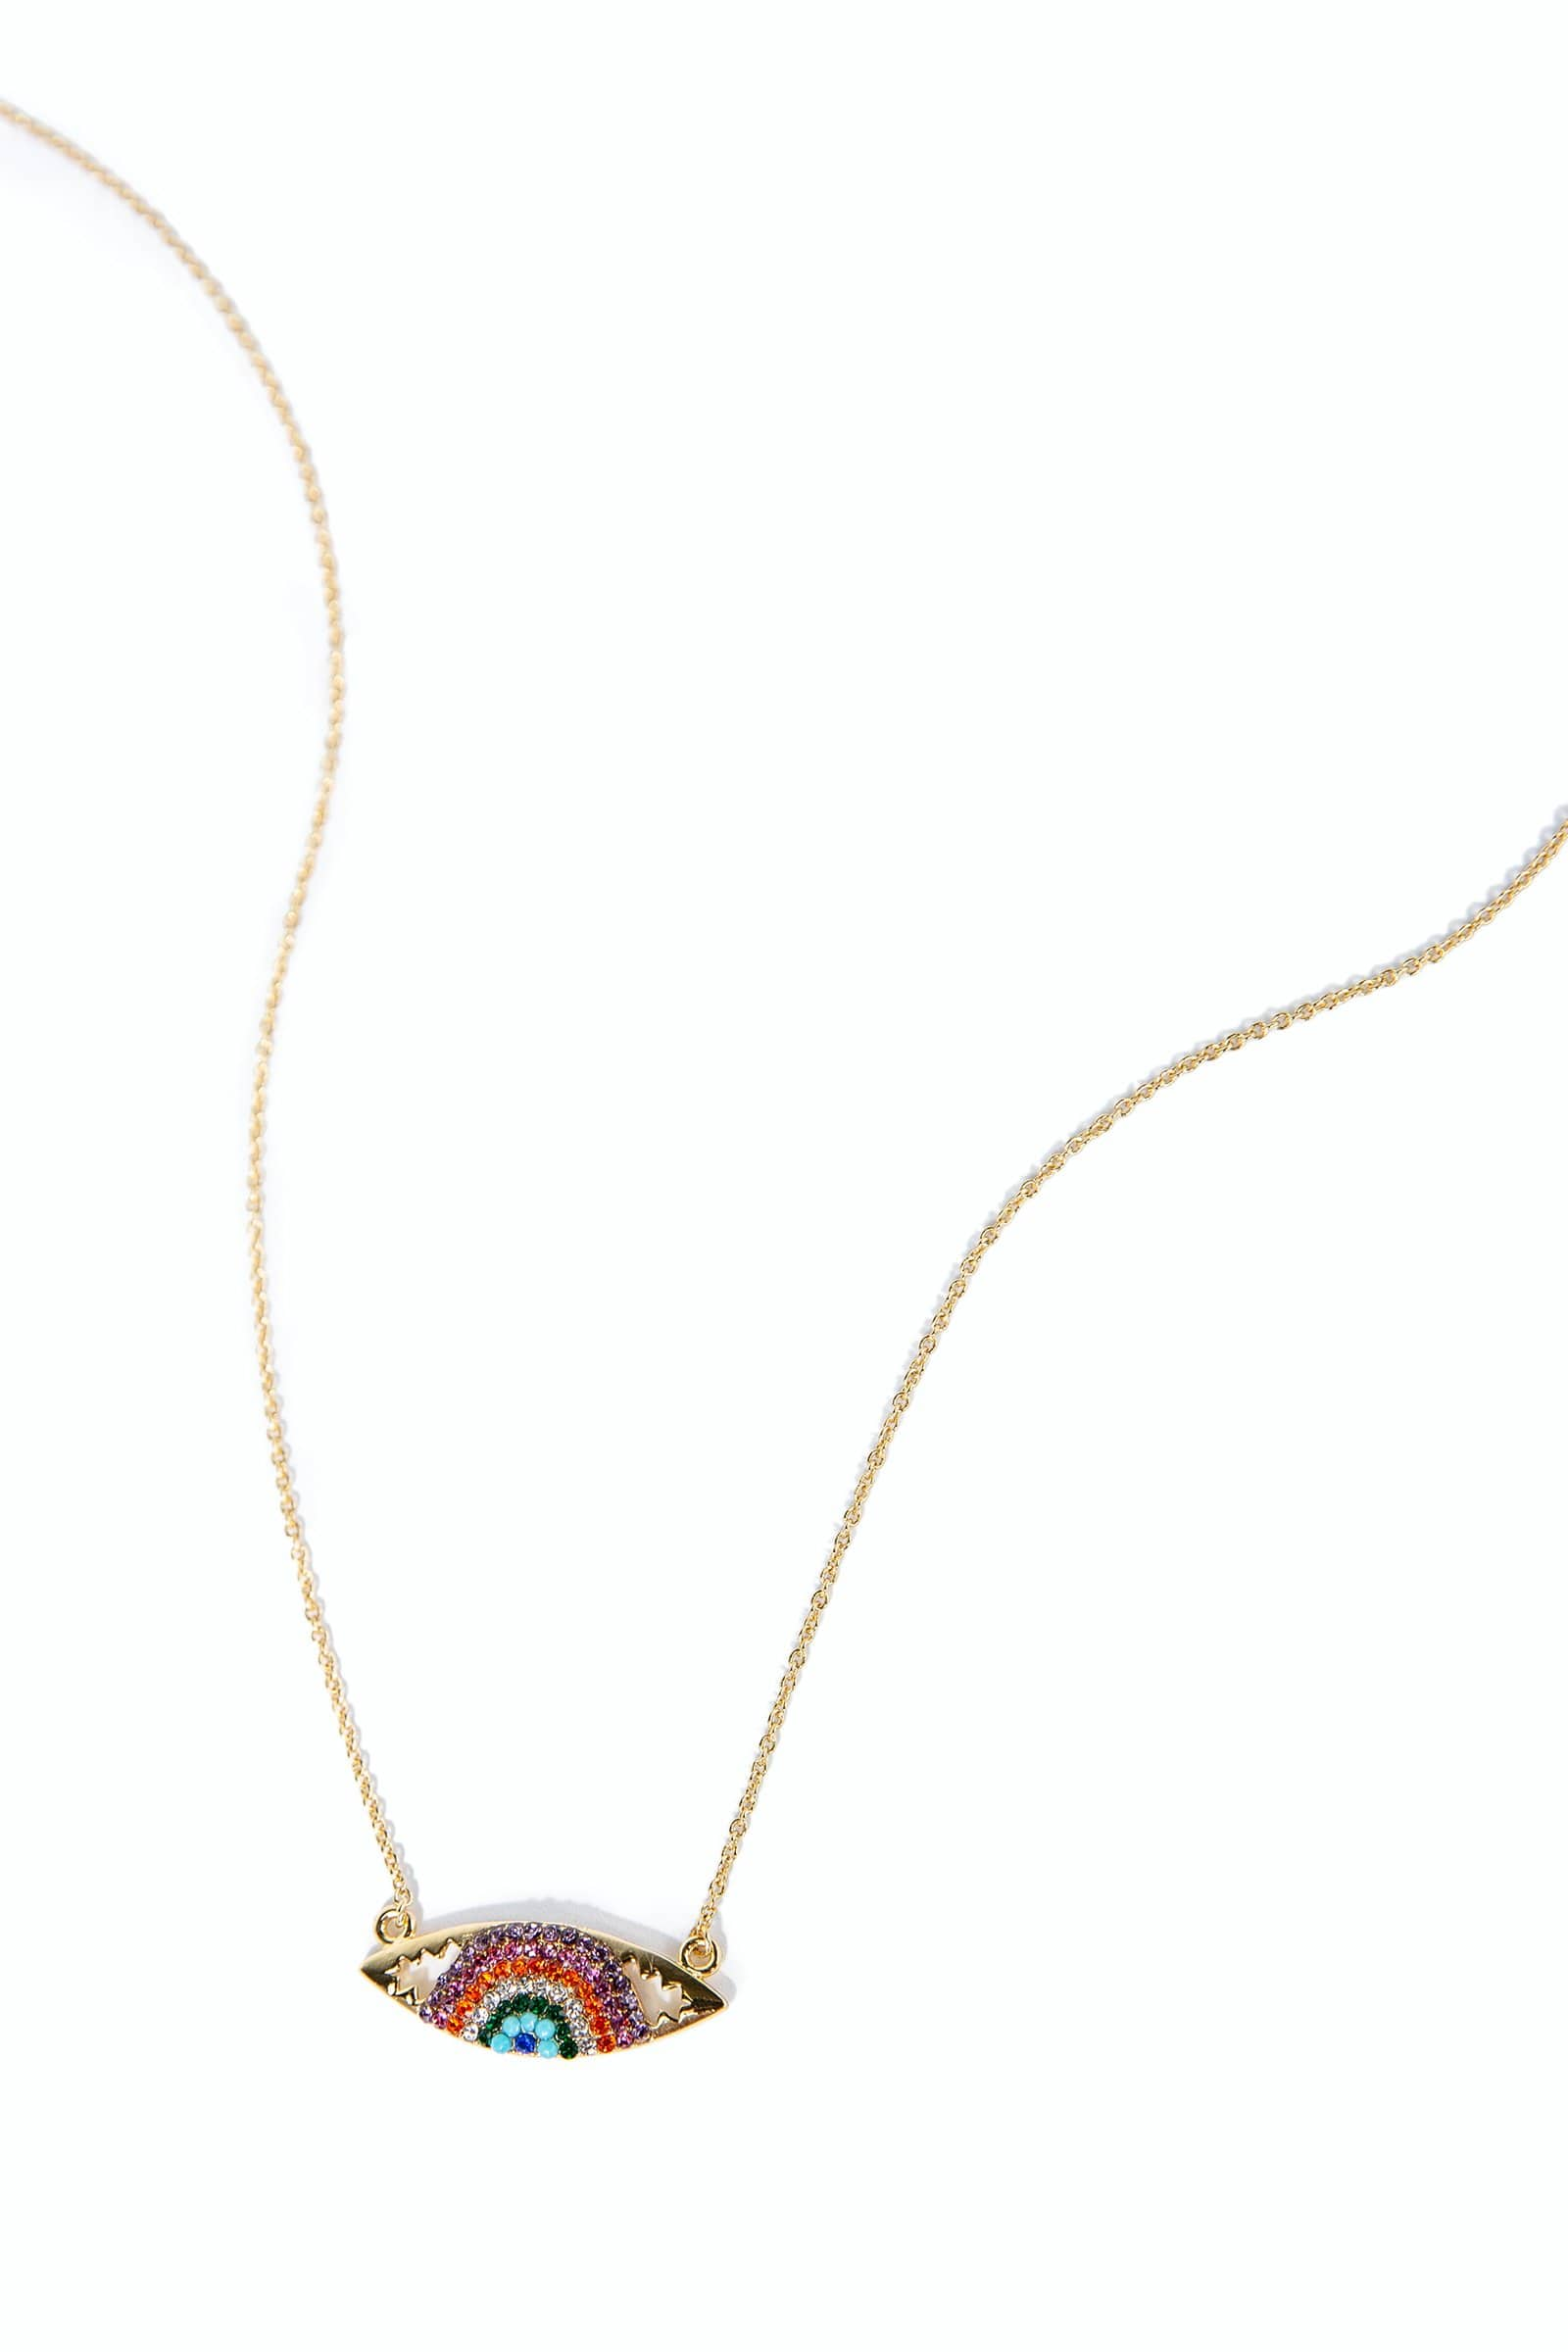 Eye necklace with multi-colored zircon crystals | J.ING women's accessories